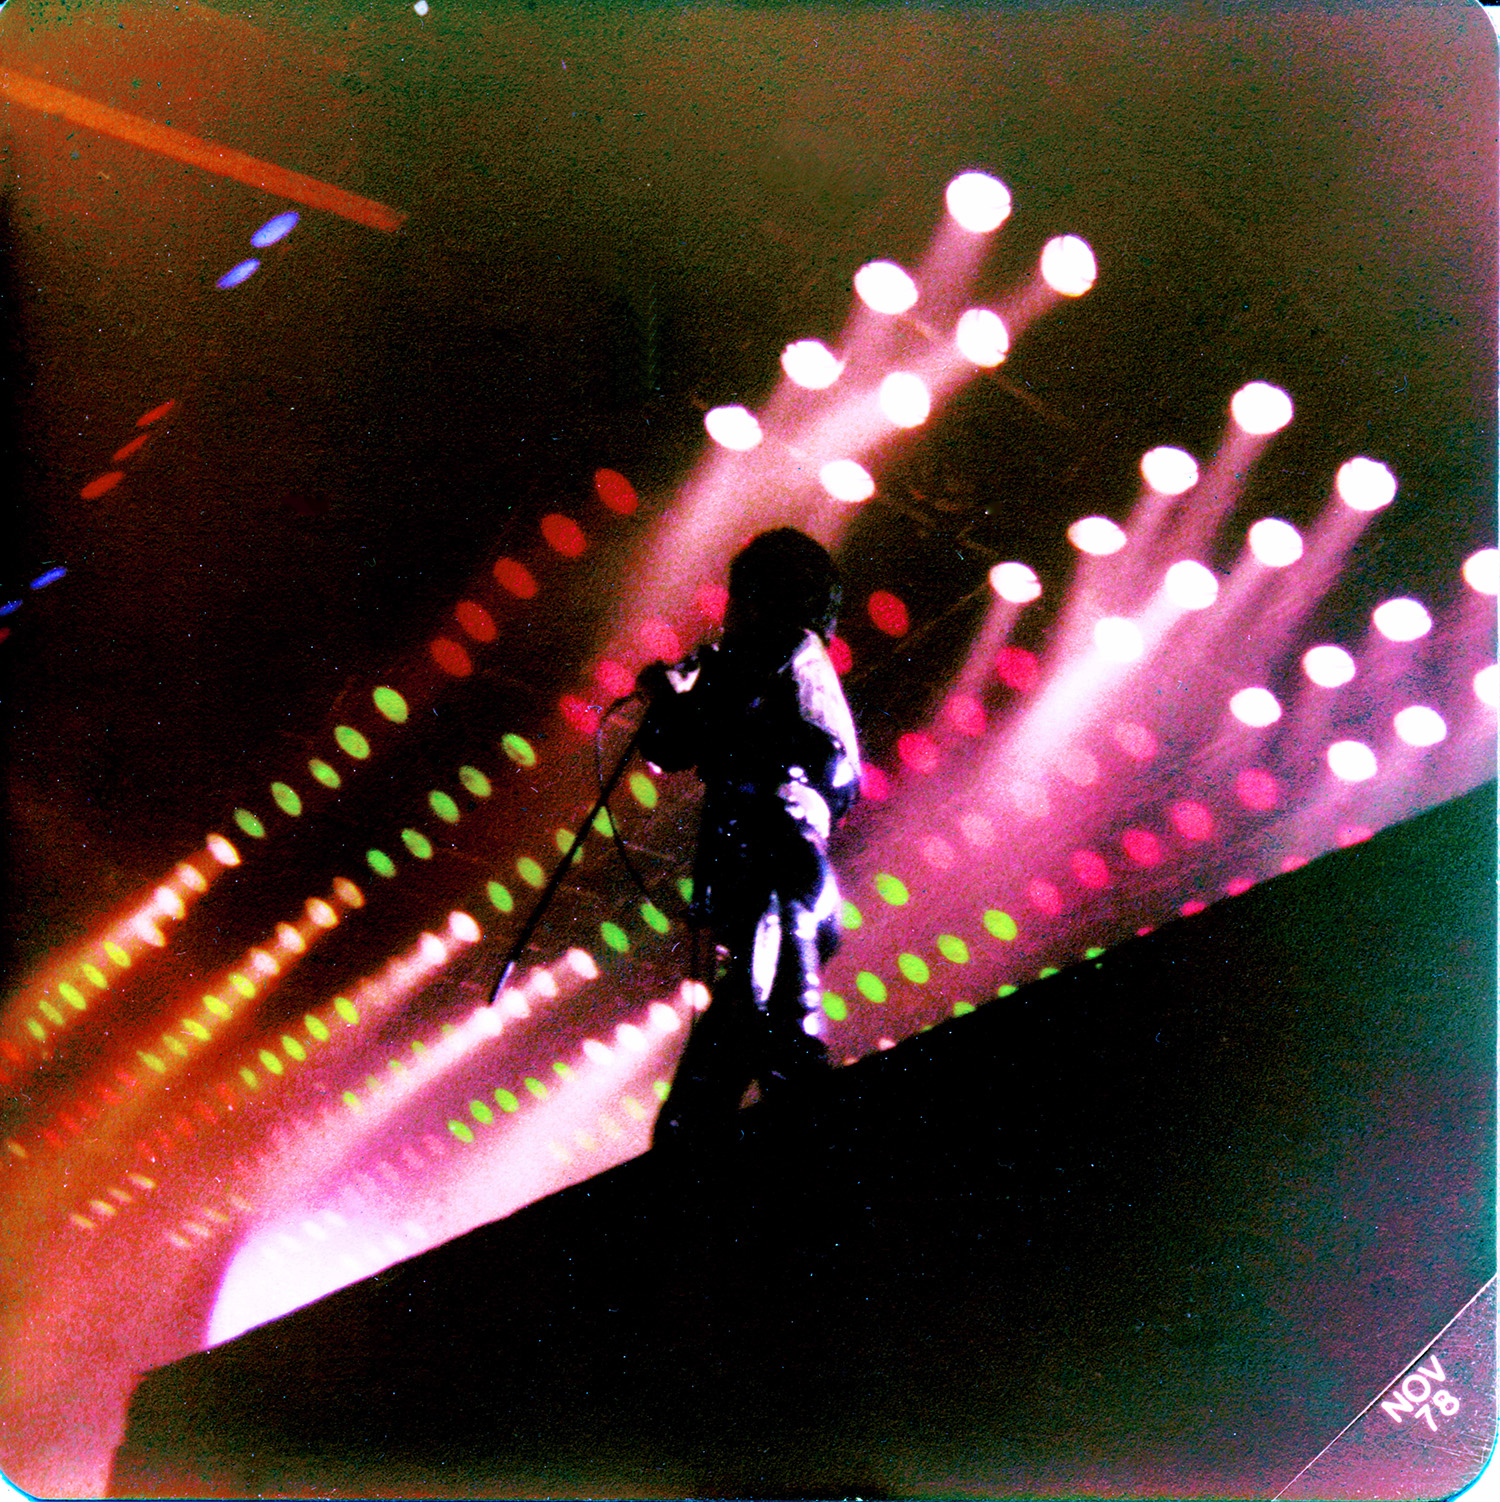 Photo: 11.11.1978 - Queen live at the Wings Stadium, Kalamazoo, Michigan, USA